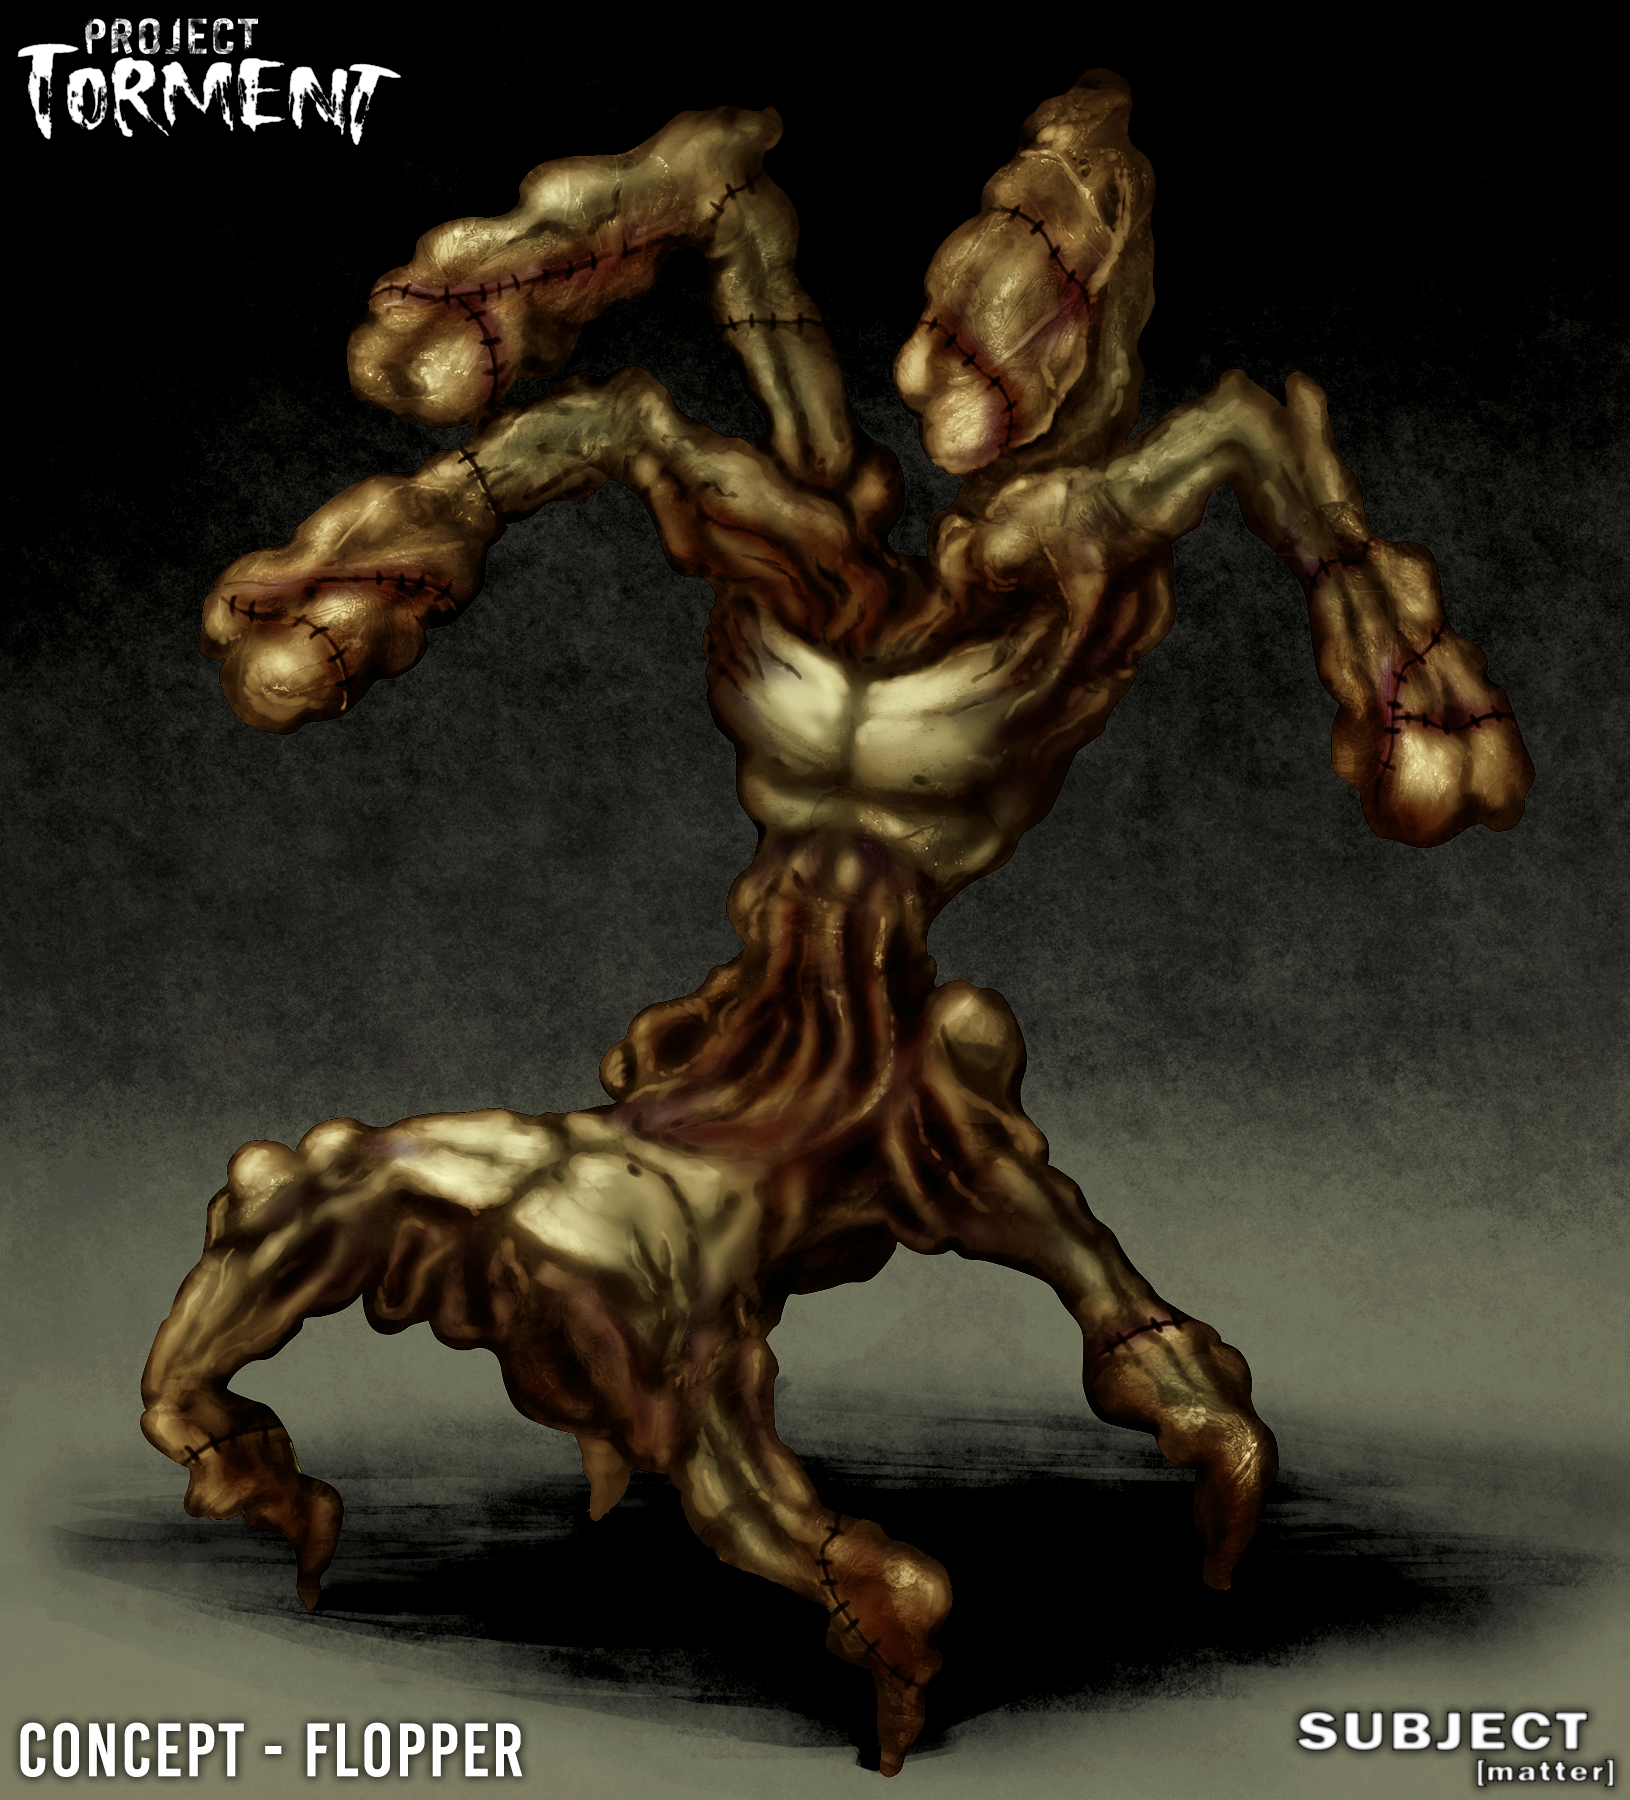 Project Torment Enemy Concept - Flopper